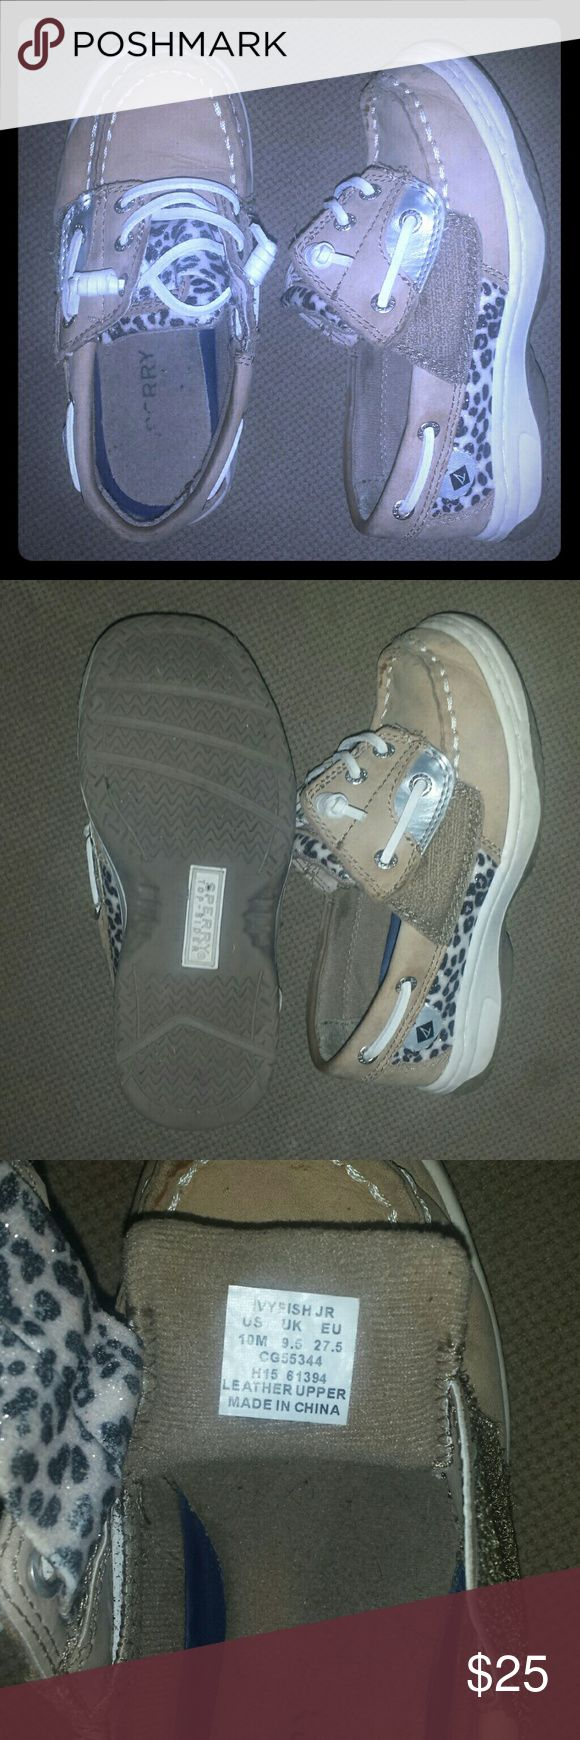 Toddler girl sperrys Tan and cream colored. lightly worn. size 10 medium cheetah print with velcro. Sperry Top-Sider Shoes